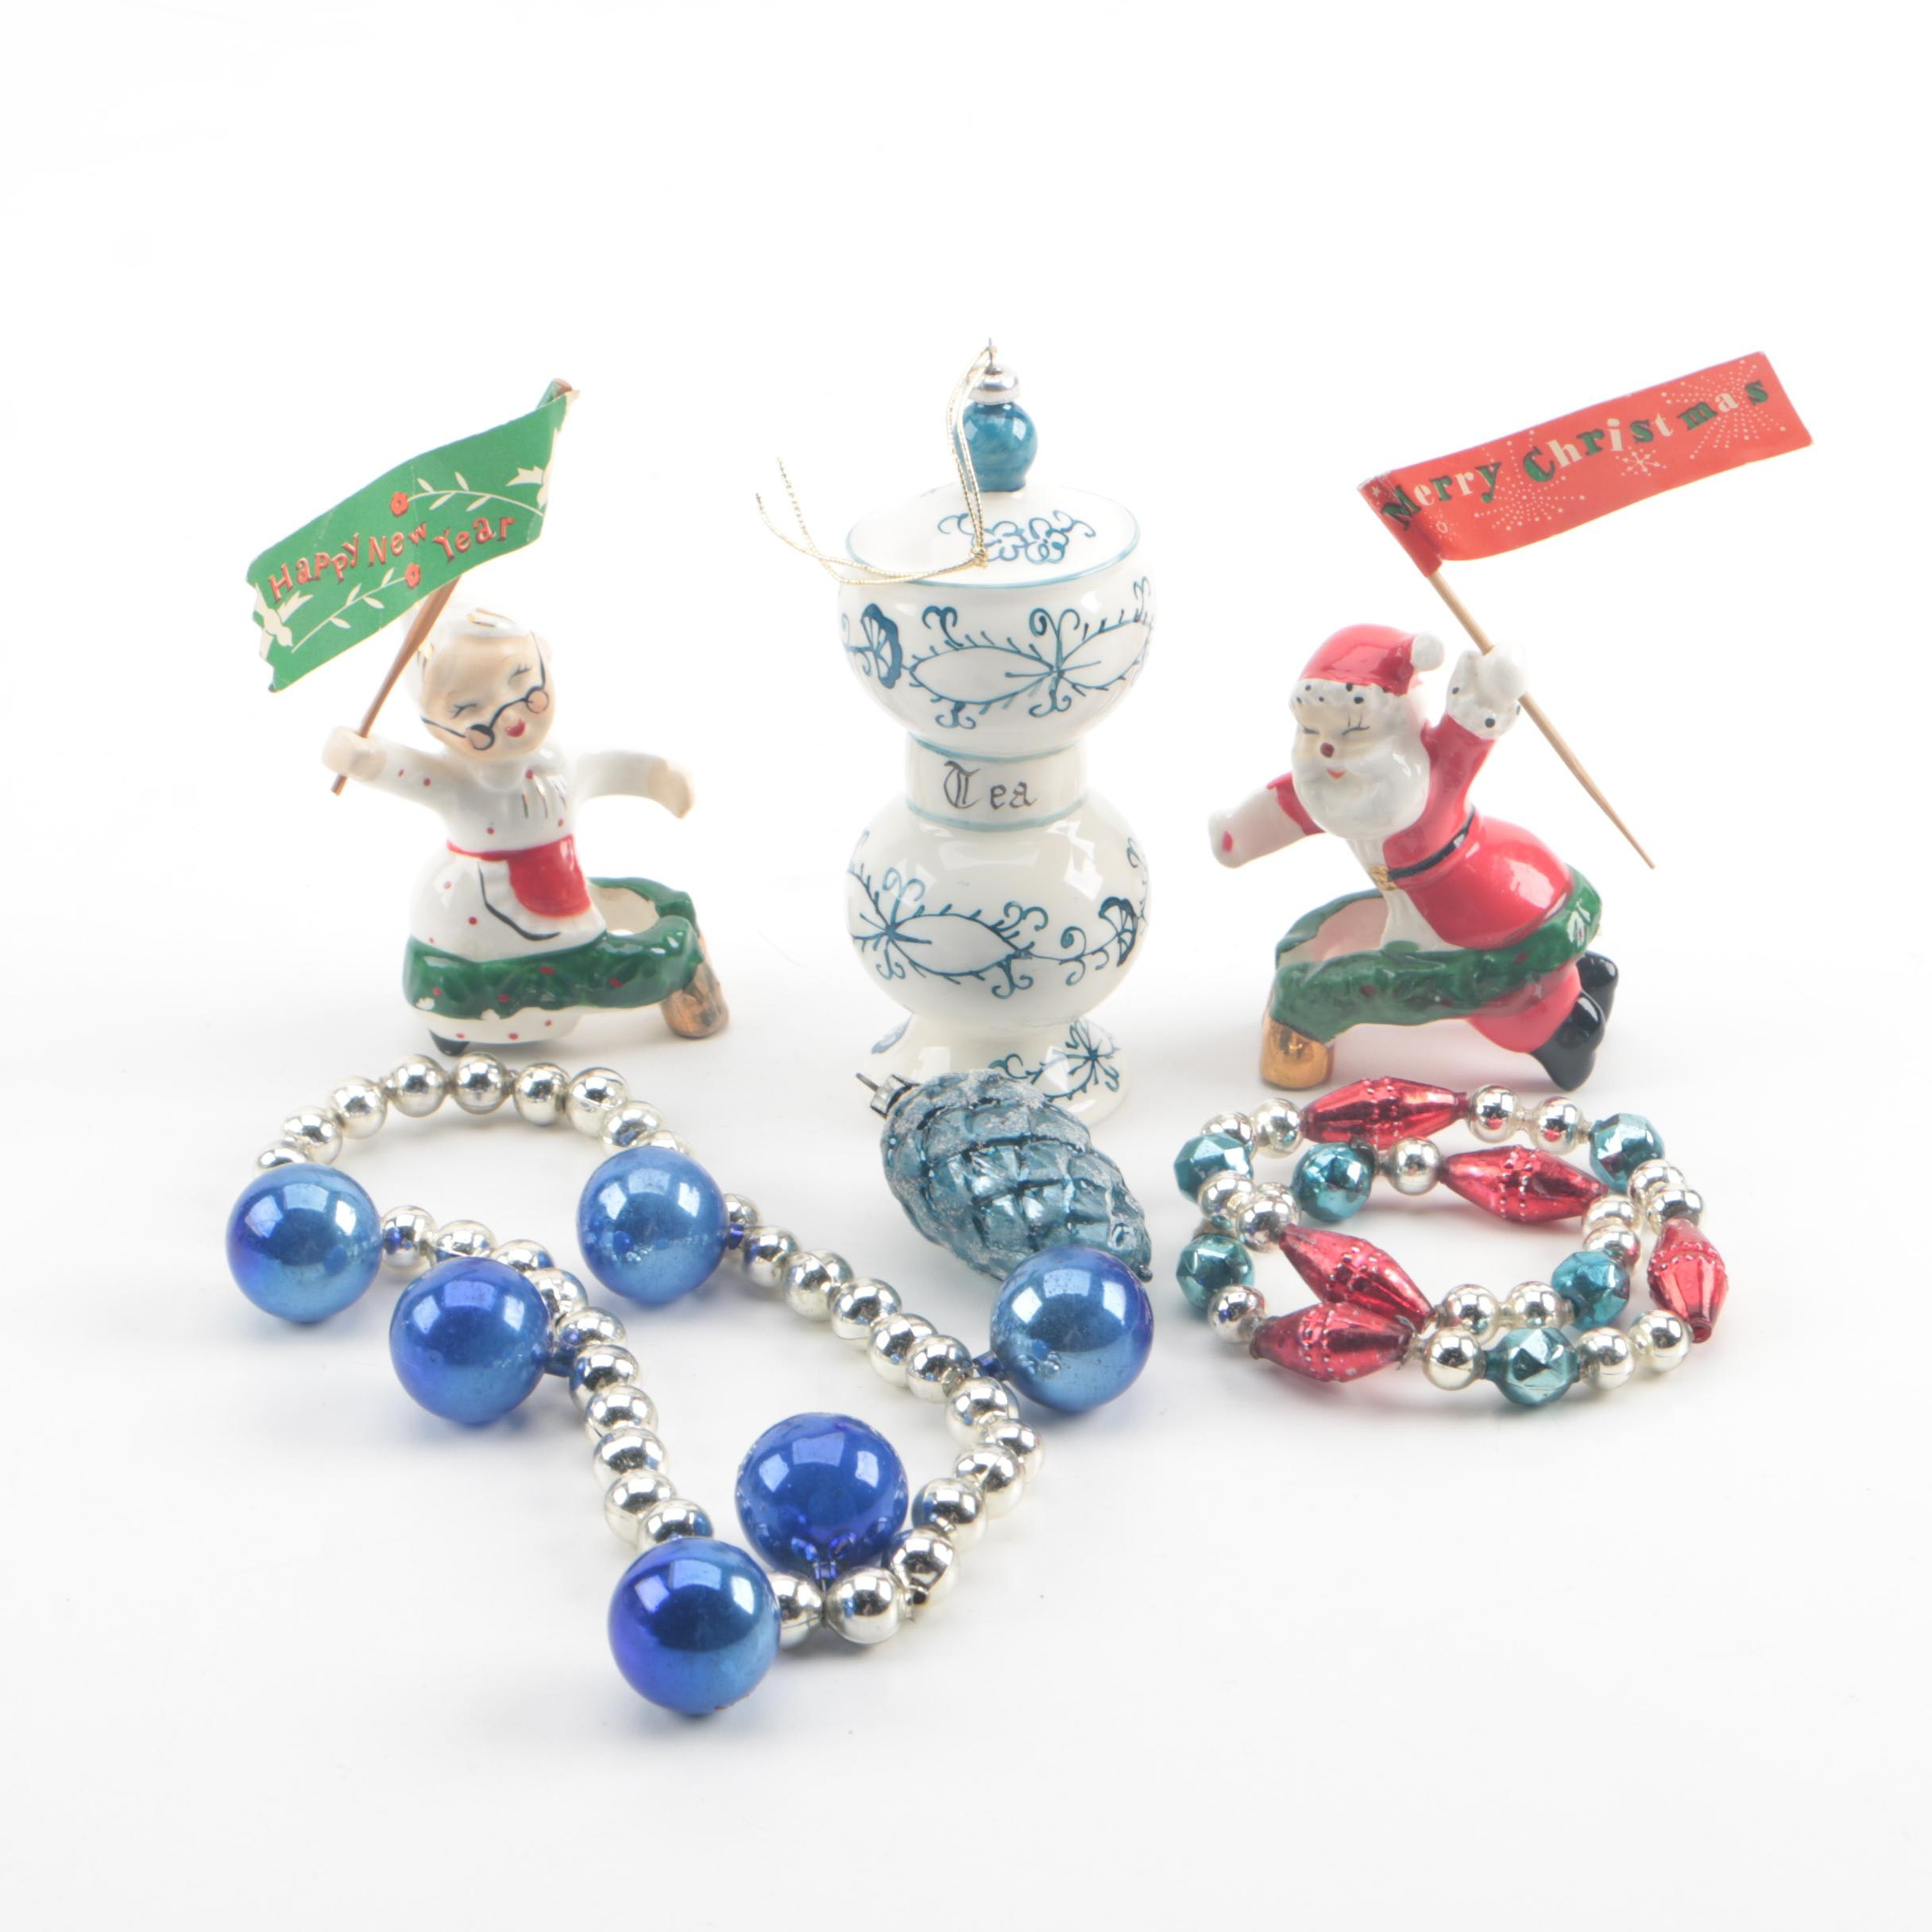 Holiday Ornaments and Decorations